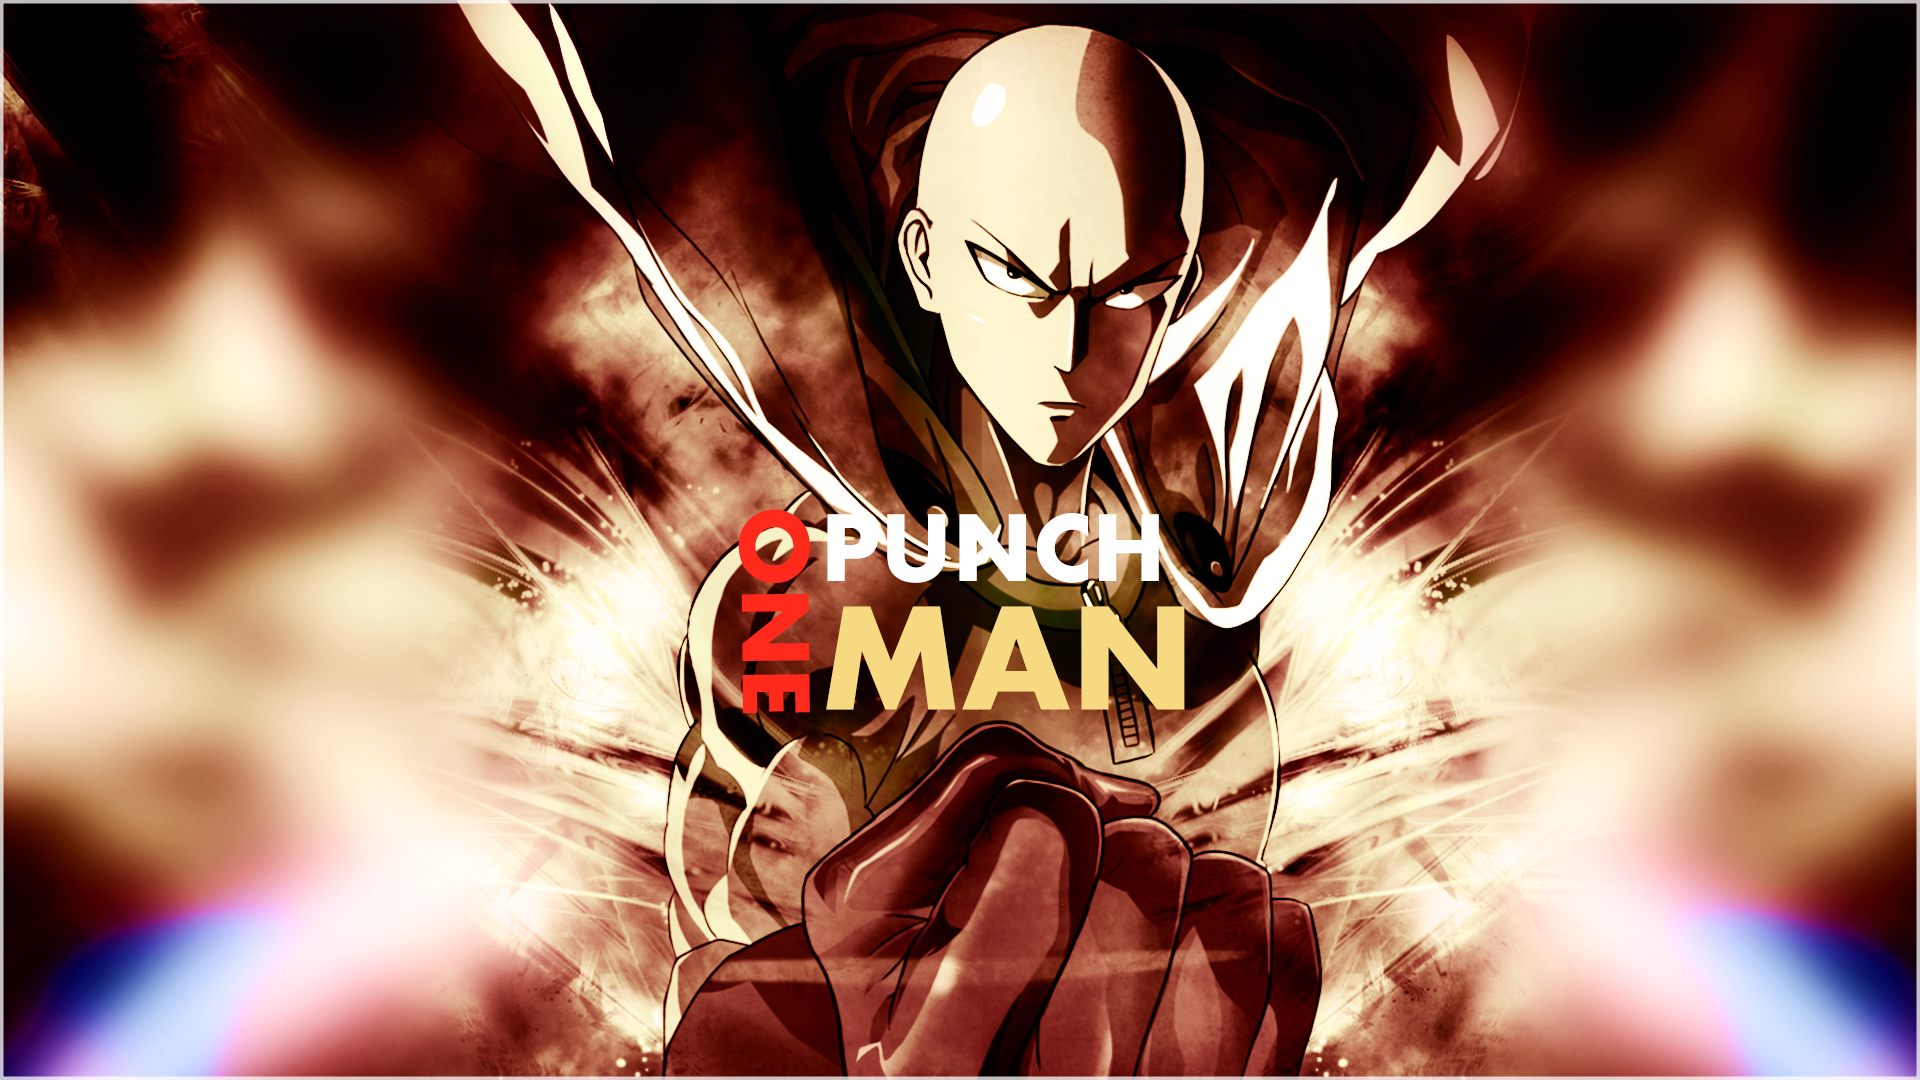 http://vignette4.wikia.nocookie.net/one-punch-man-fan-fiction/images/2/20/OPMFrontPage.png/revision/latest?cb=20160322101229